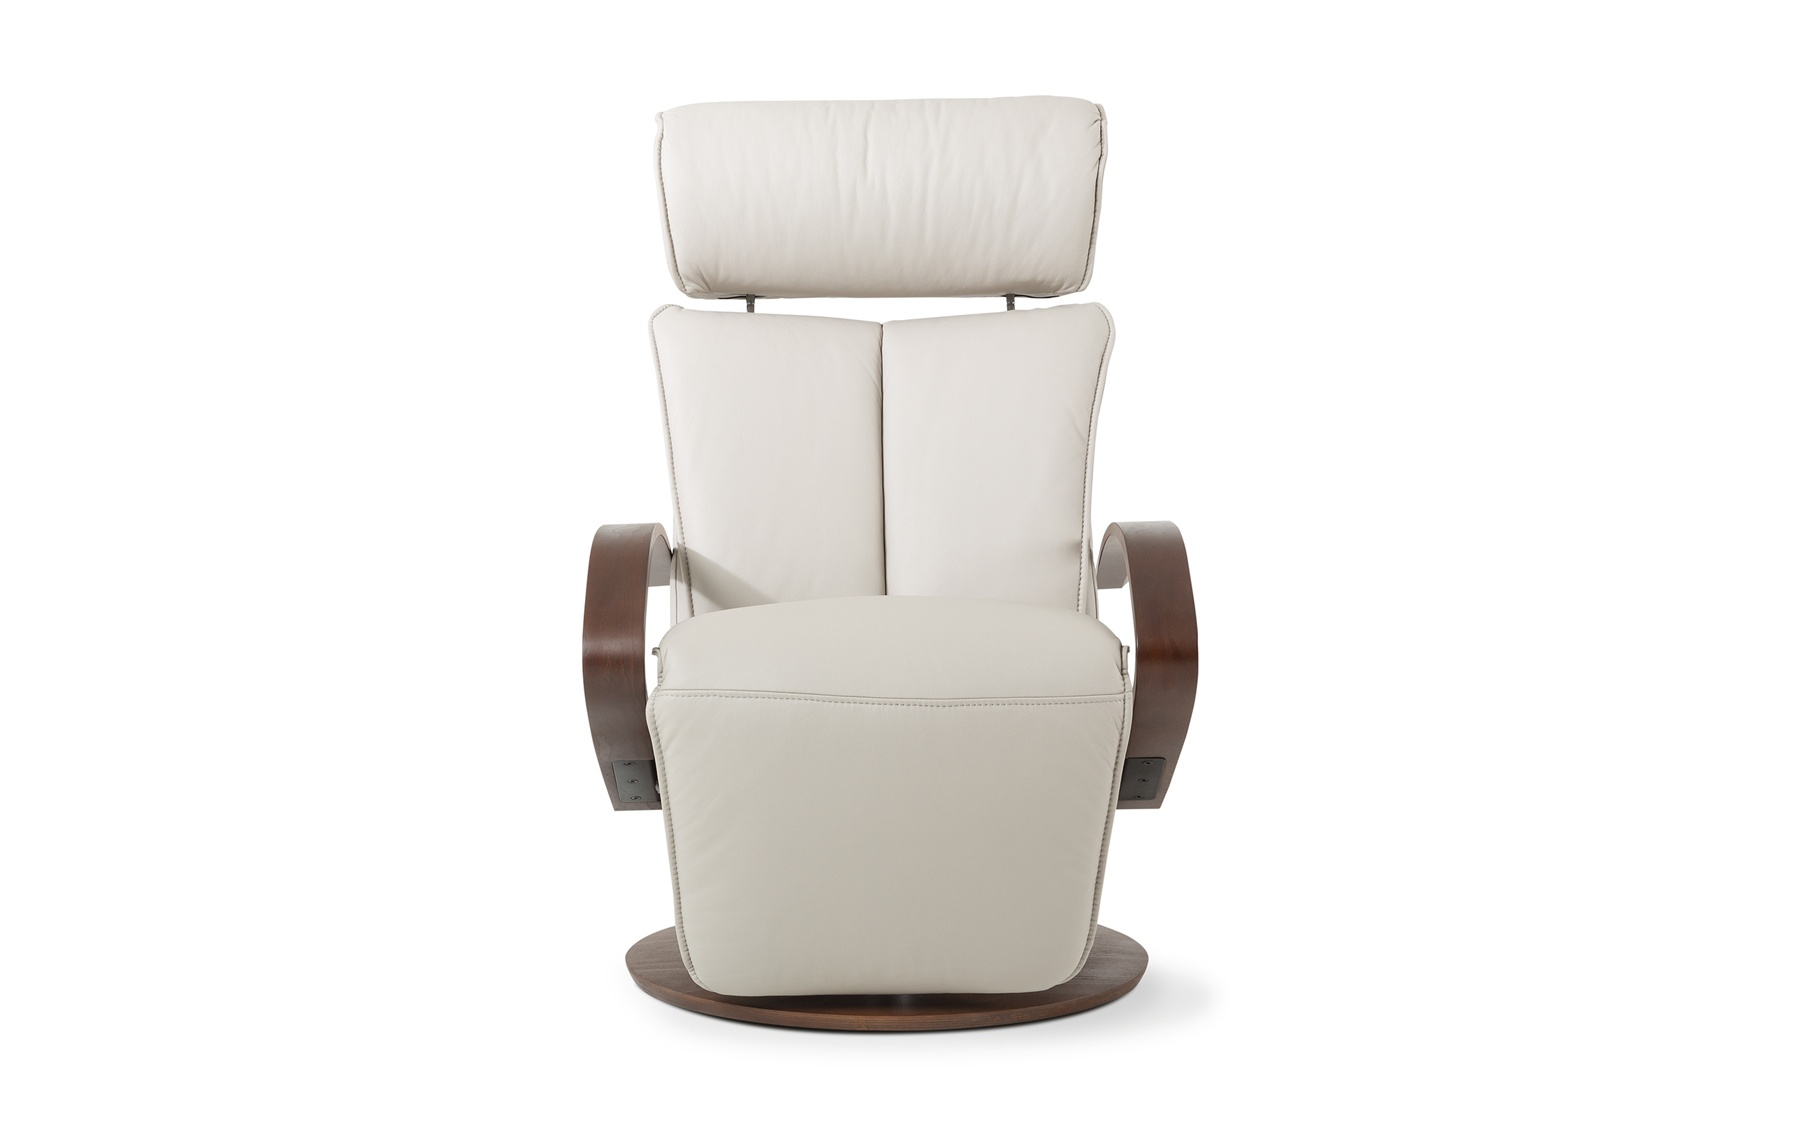 Fauteuil inclinable cuir 856 Fauteuils Salons